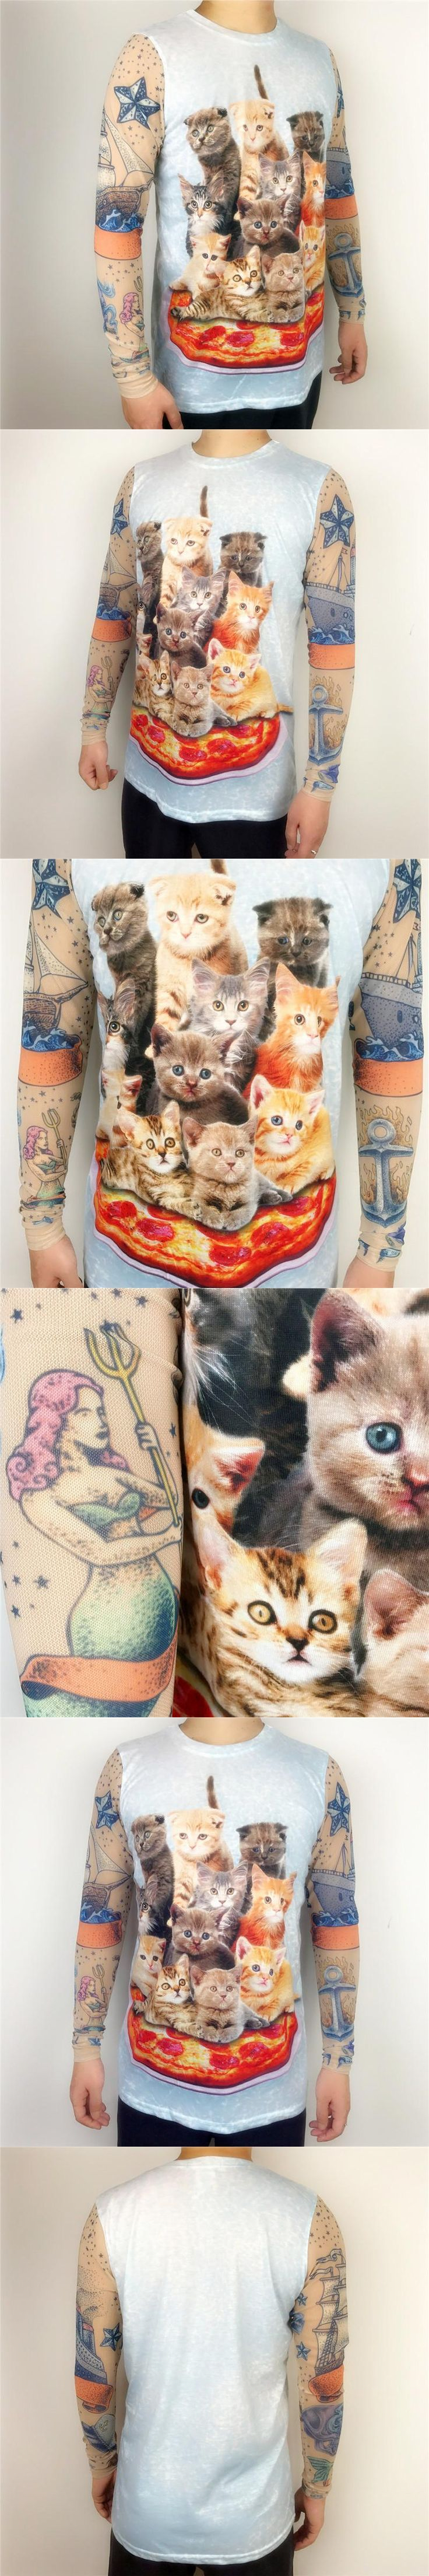 Cute Pizza Cat Printed T Shirts for Men with Patchwork Tattoo Cover Up Long Sleeves Funny Boys Kawaii Tee Plus Size S-2XL